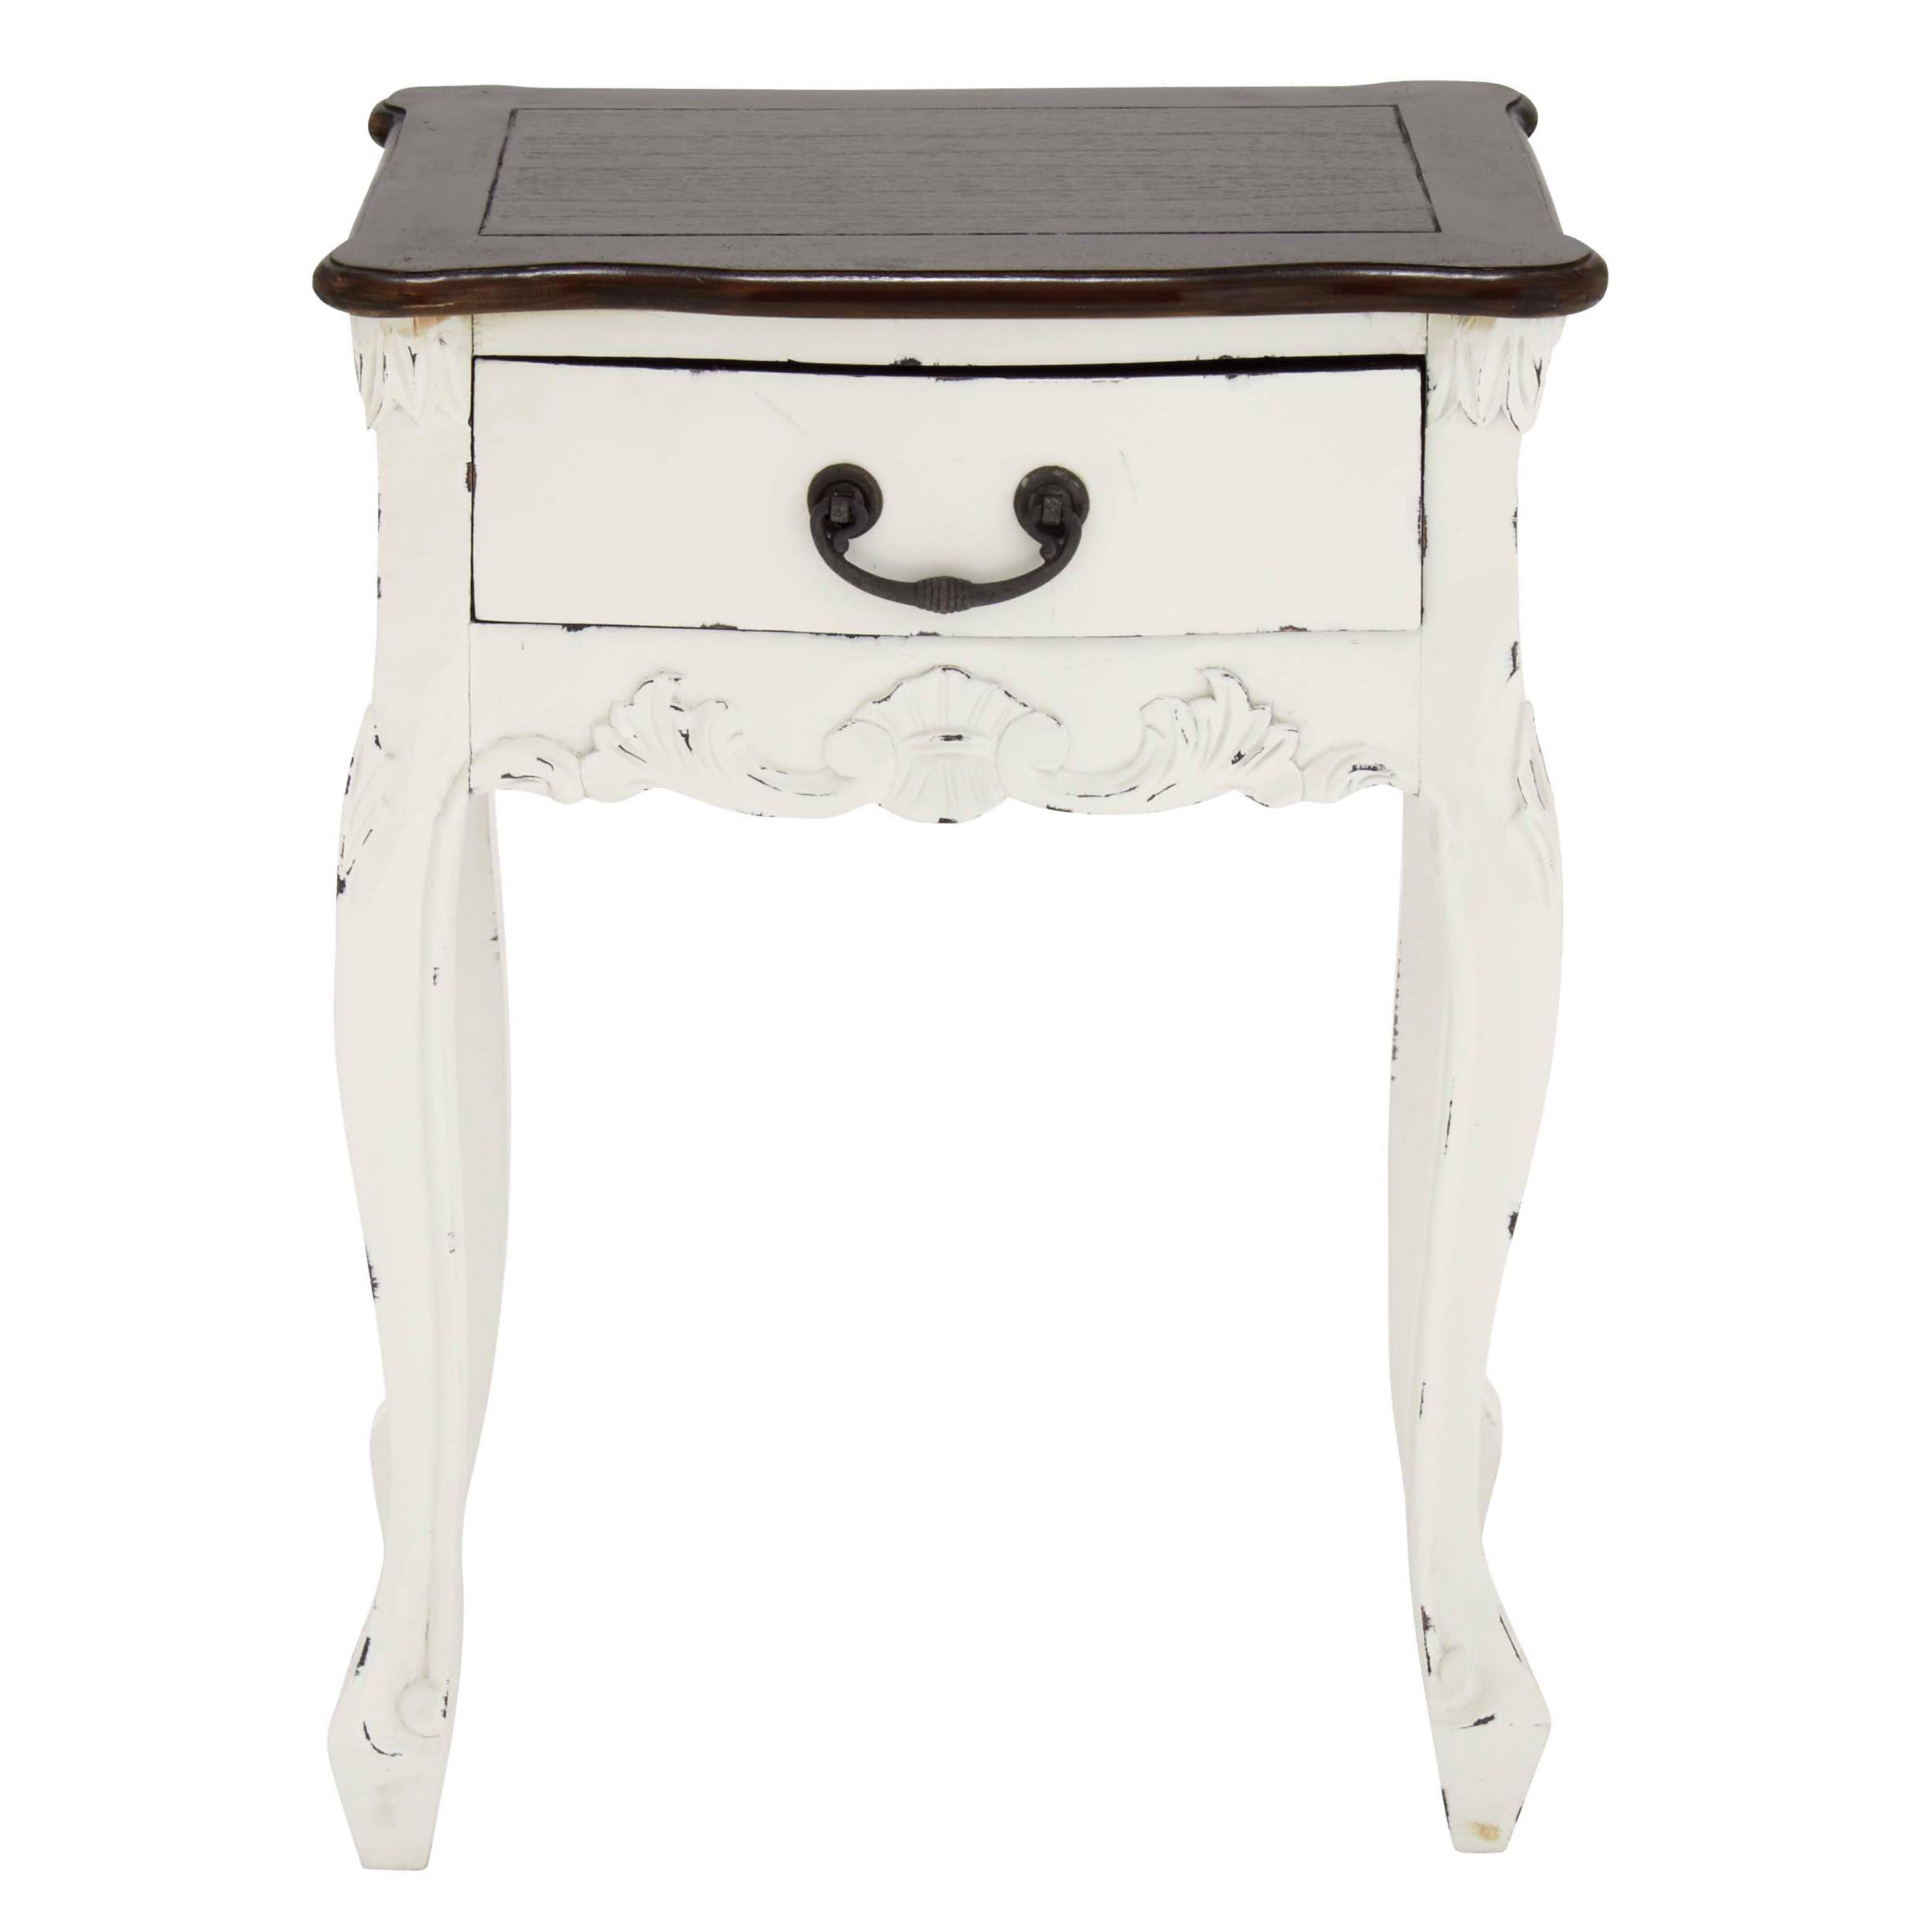 rustic petite inch white mahogany wood accent table free shipping today aluminum patio furniture demilune and oak bedside homemade barn door patterned living room chairs garden